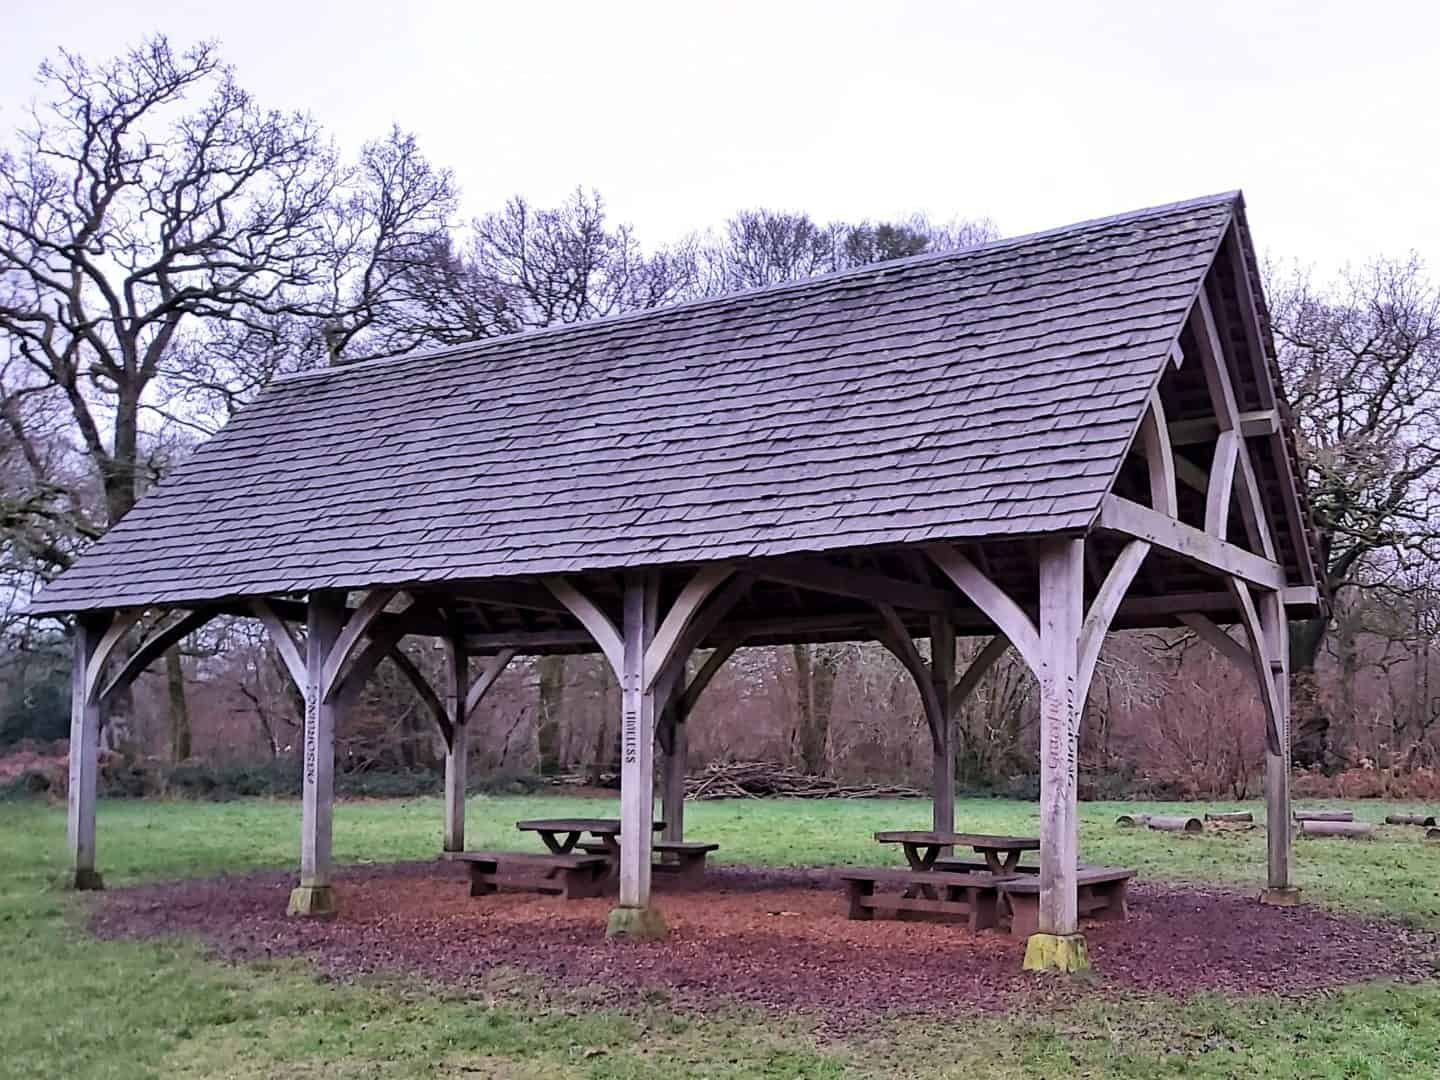 An open sided wooden building at Westonbirt Arboretum